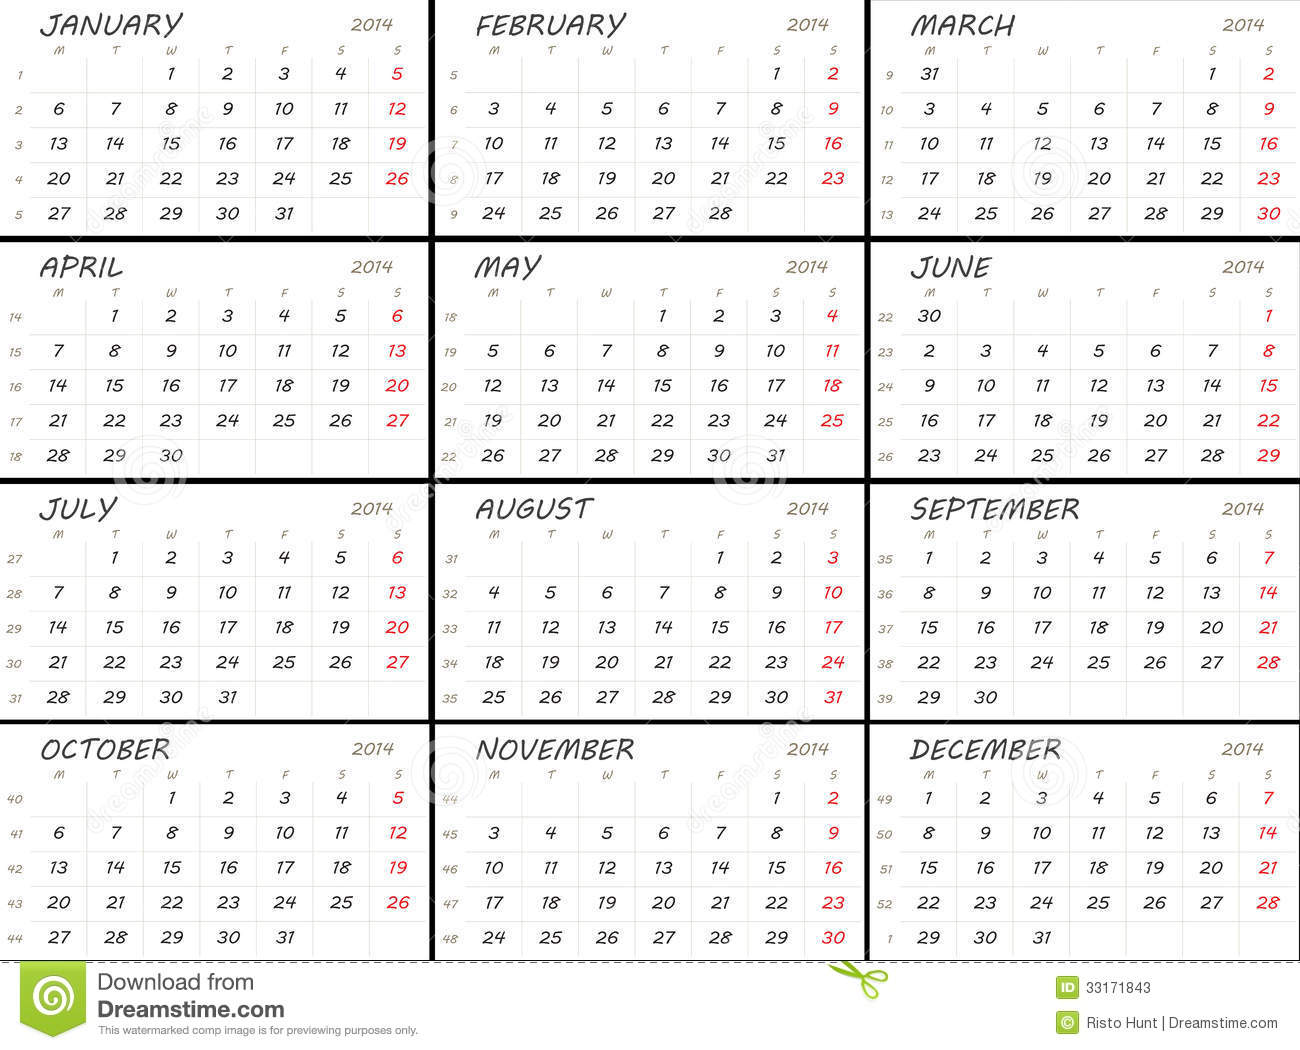 Solid 2014 Calendar Template Stock Photos - Image: 33171843